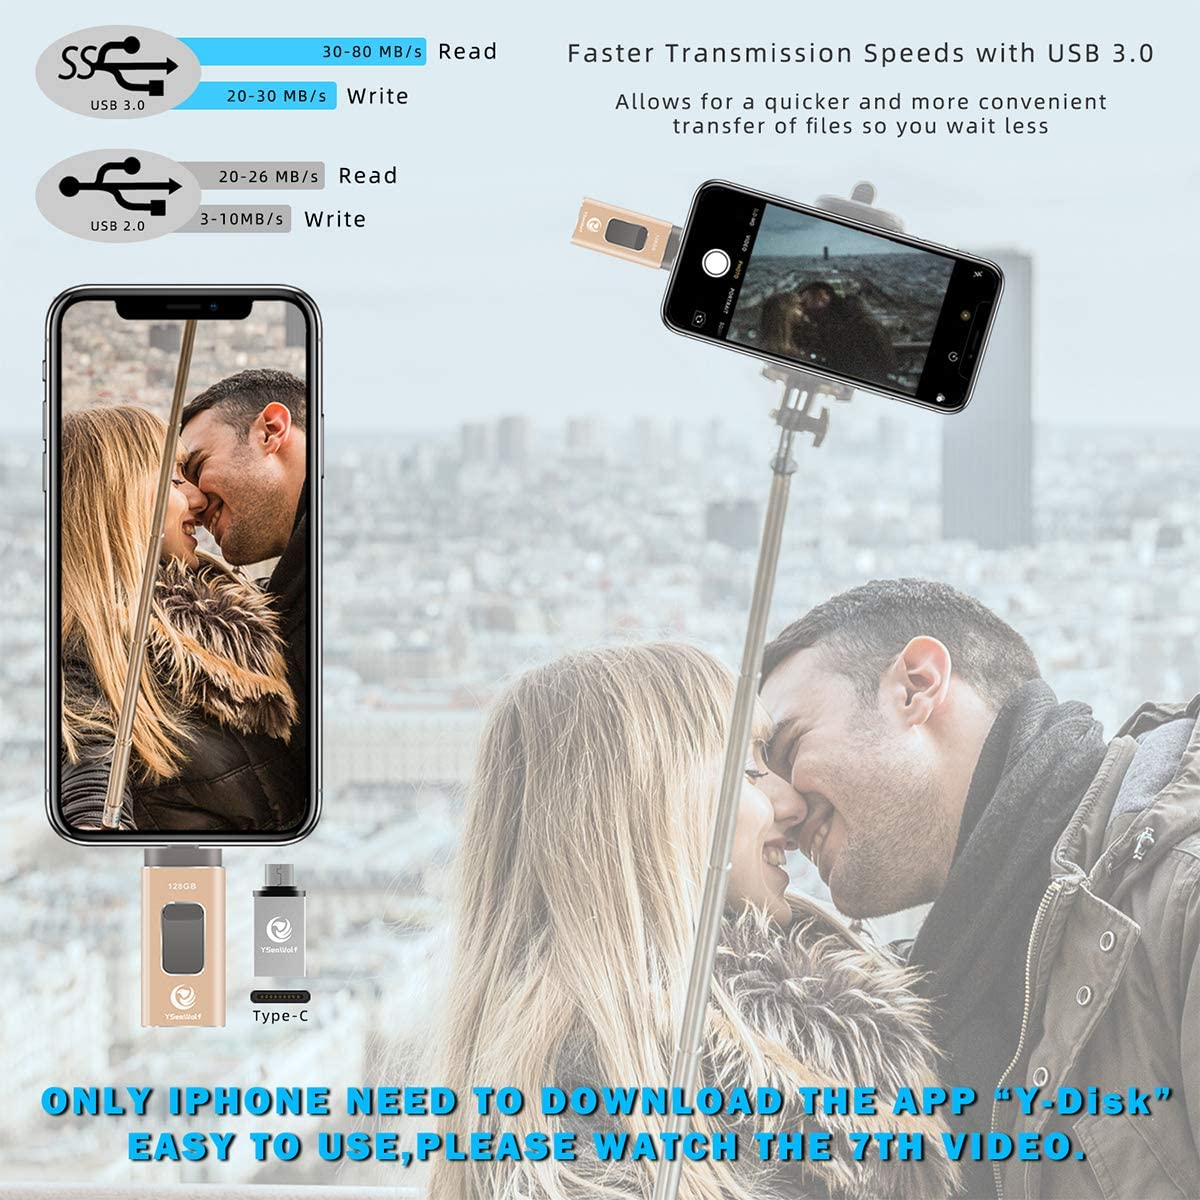 PC iPhone Picture Stick iPhone Memory Stick iPhone Flash Drive for iPhone 256GB 4 in 1 USB Flash Drive Type c Flash Drive 3.0 YSeaWolf photostick Mobile for iPhone External Storage Android Gold